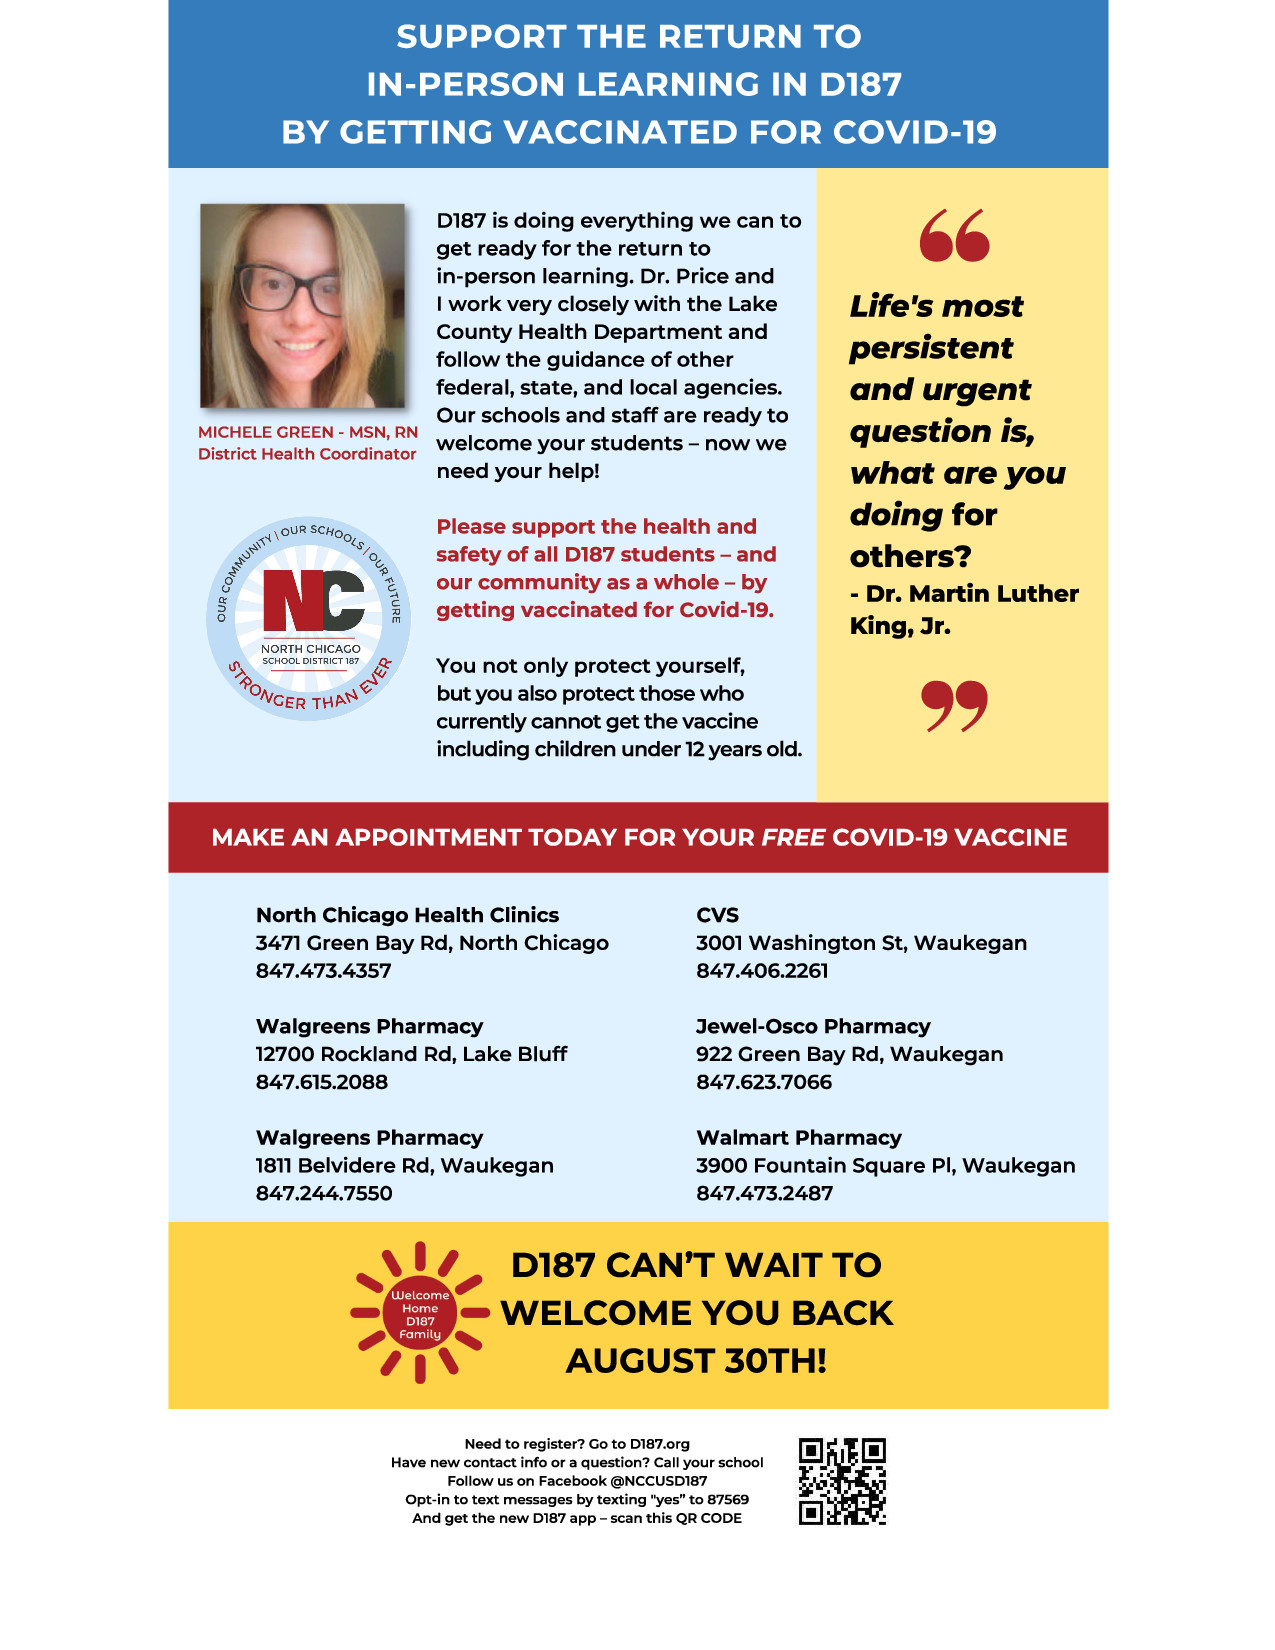 SUPPORT THE RETURN TO  IN-PERSON LEARNING IN D187 BY GETTING VACCINATED FOR COVID-19